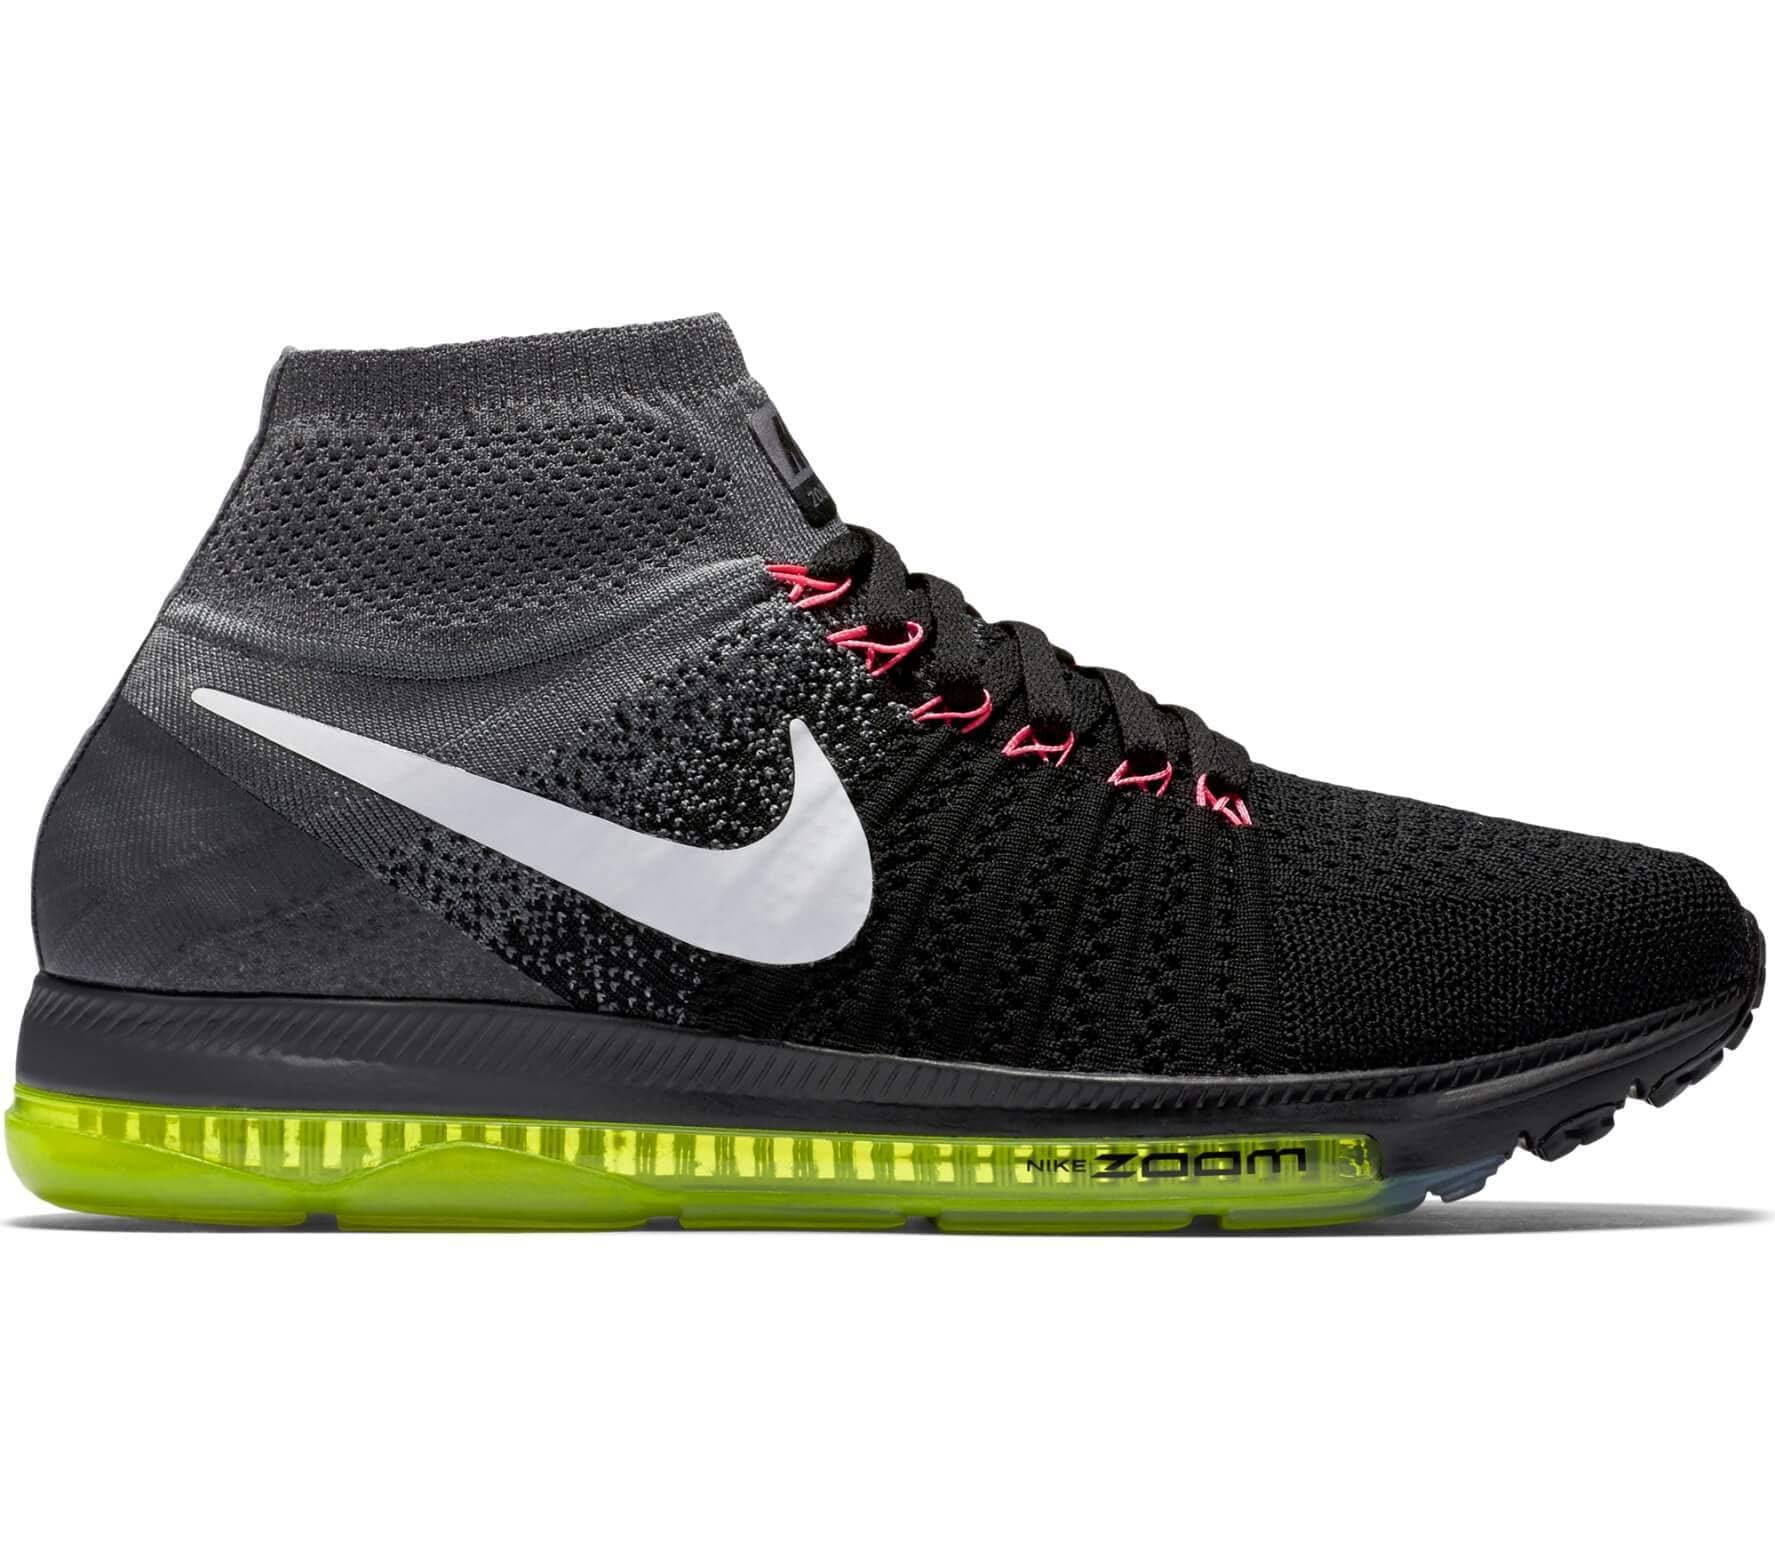 Nike - Zoom All Out Flyknit zapatillas de running para mujer (negro/blanco)